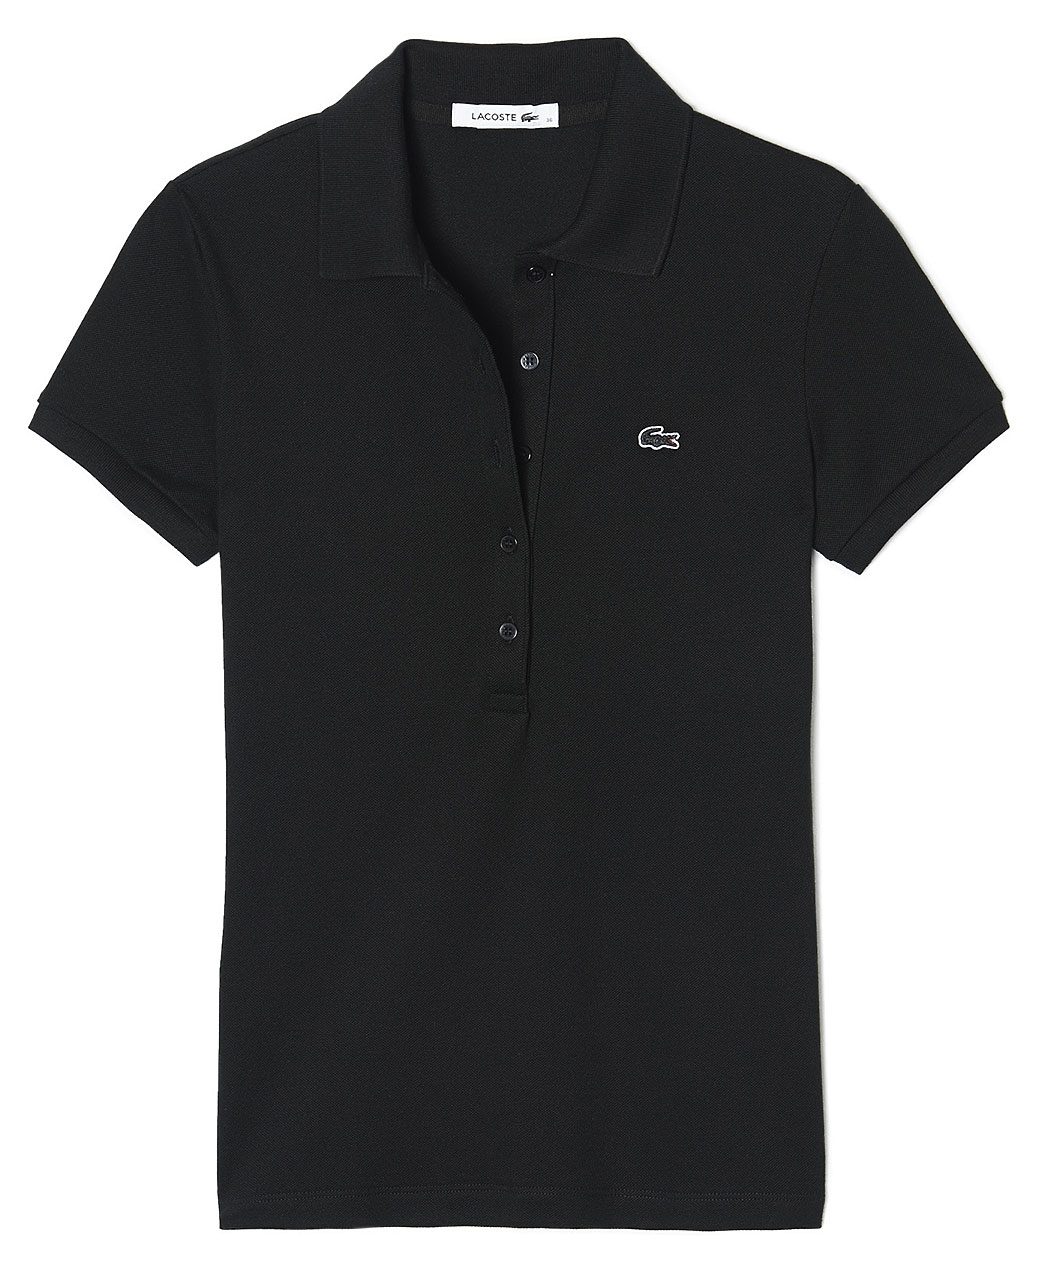 Lacoste Ladies Short Sleeve Pique Polo